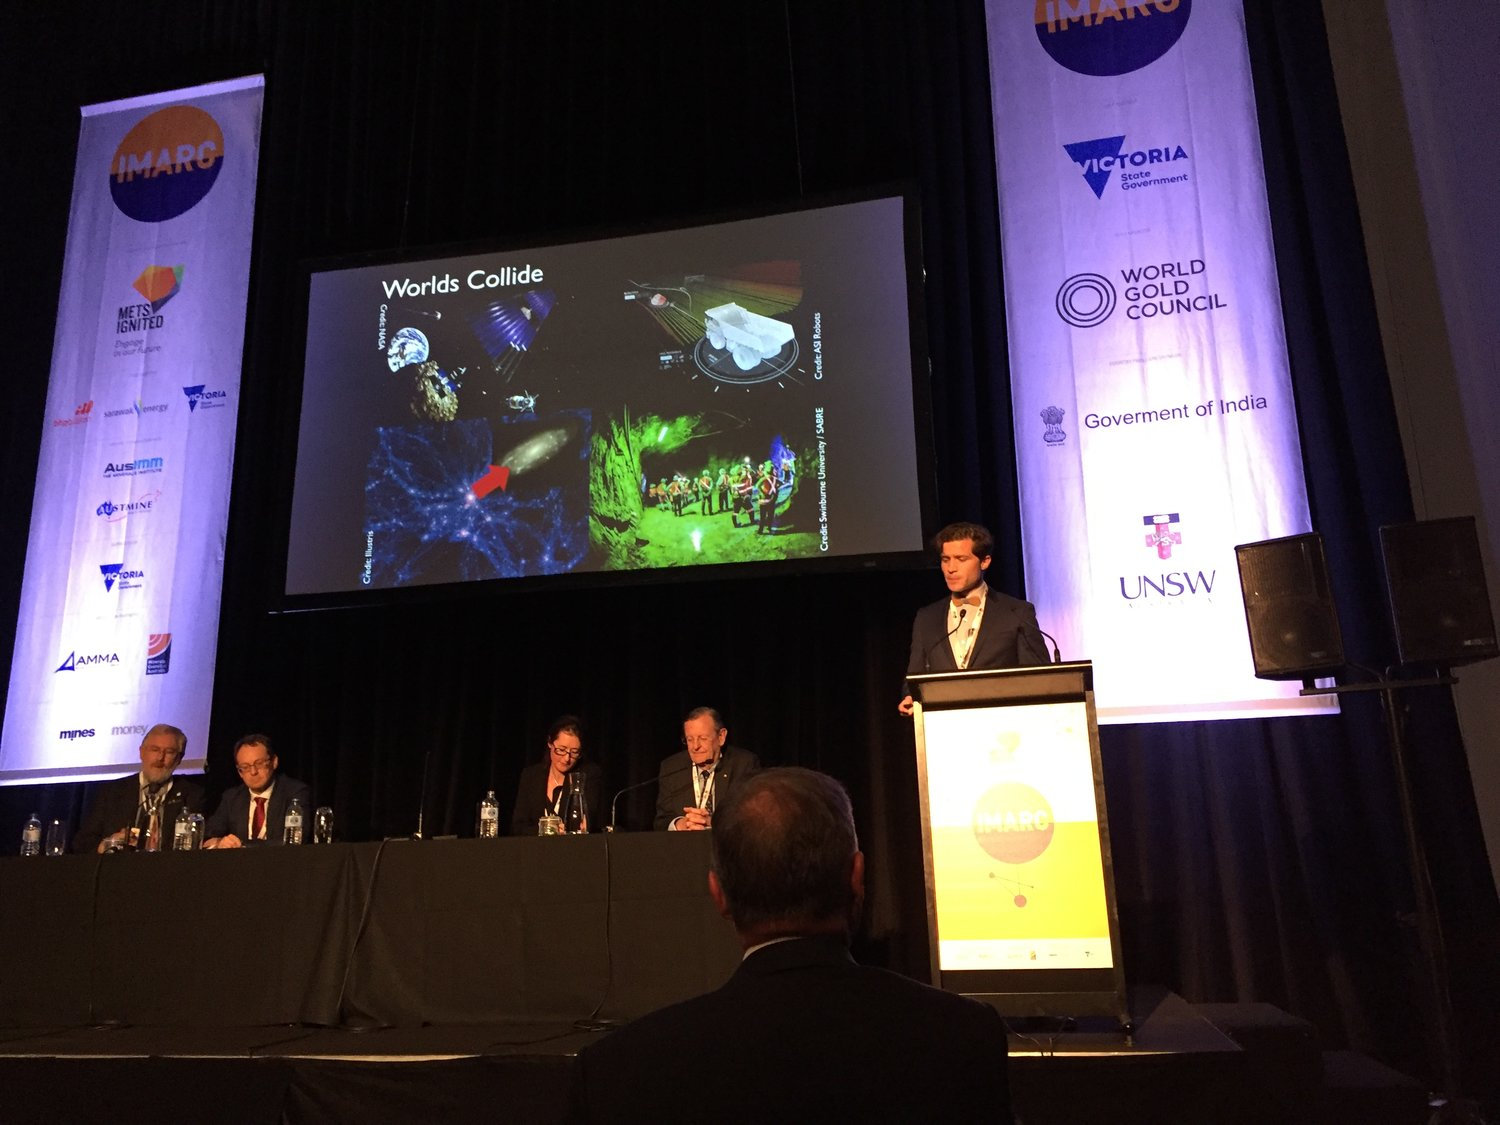 The International Mining and Resources Conference